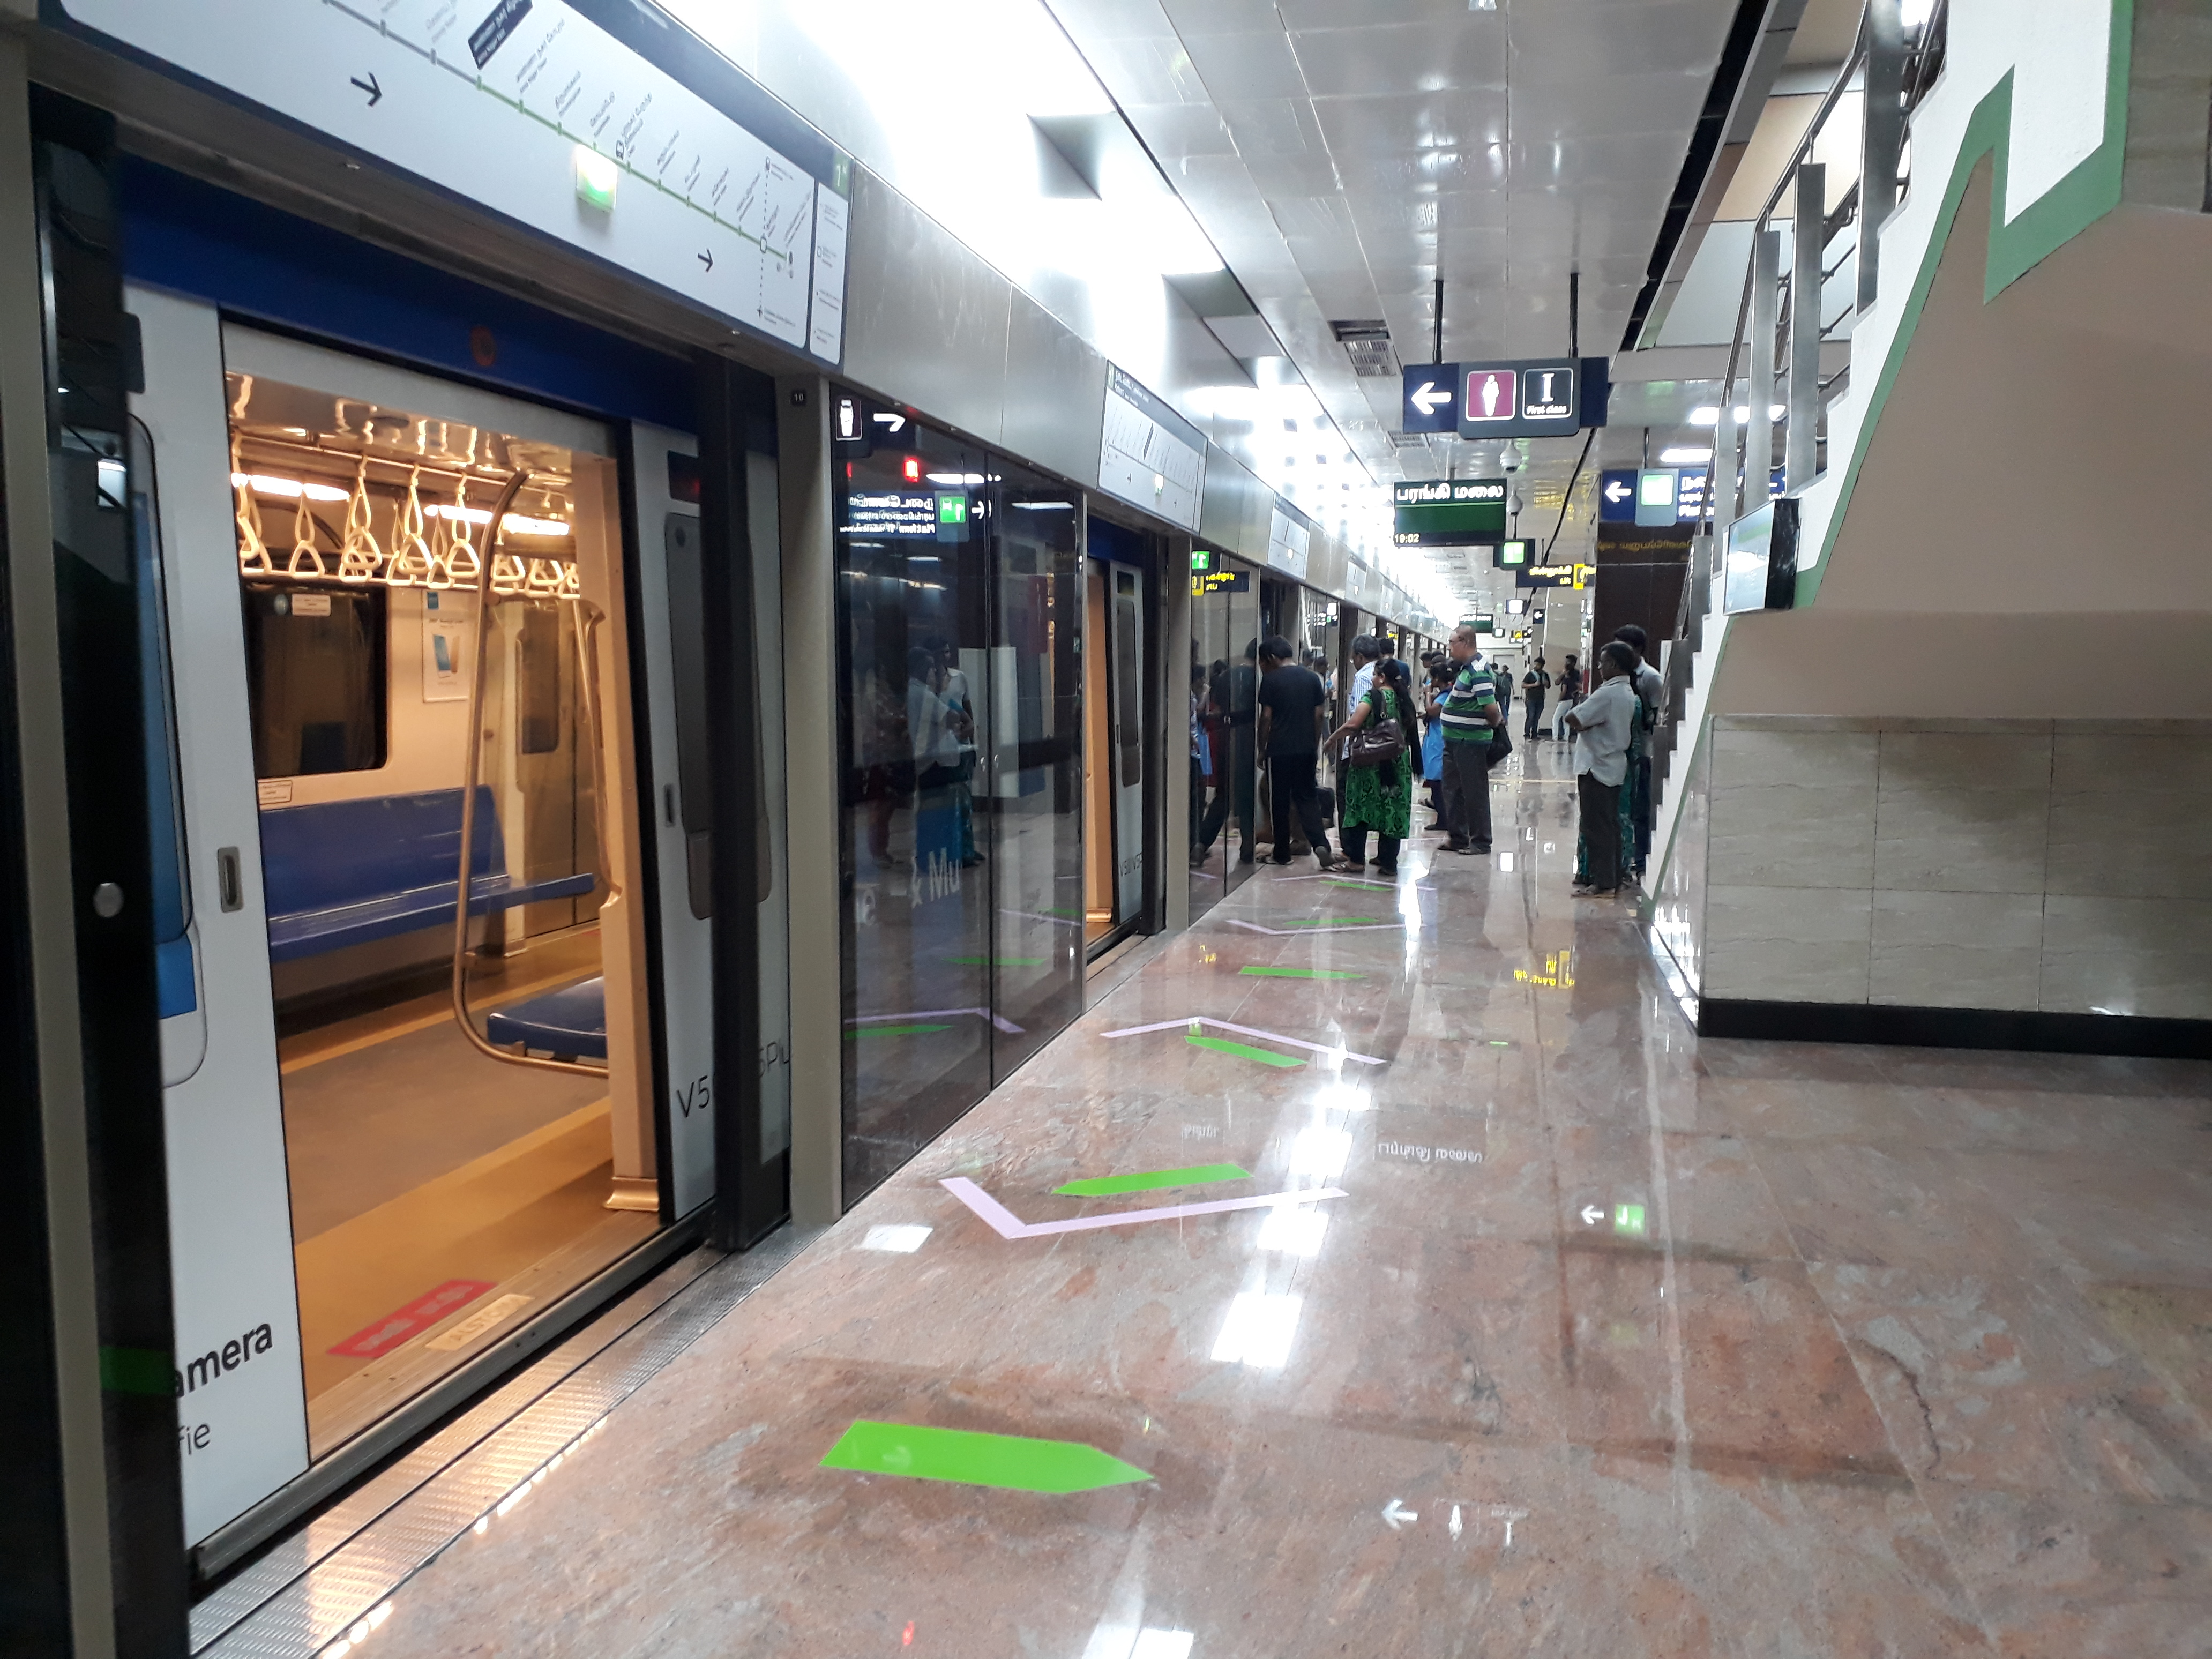 An underground station of Chennai Metro with platform-edge doors in Chennai, India.